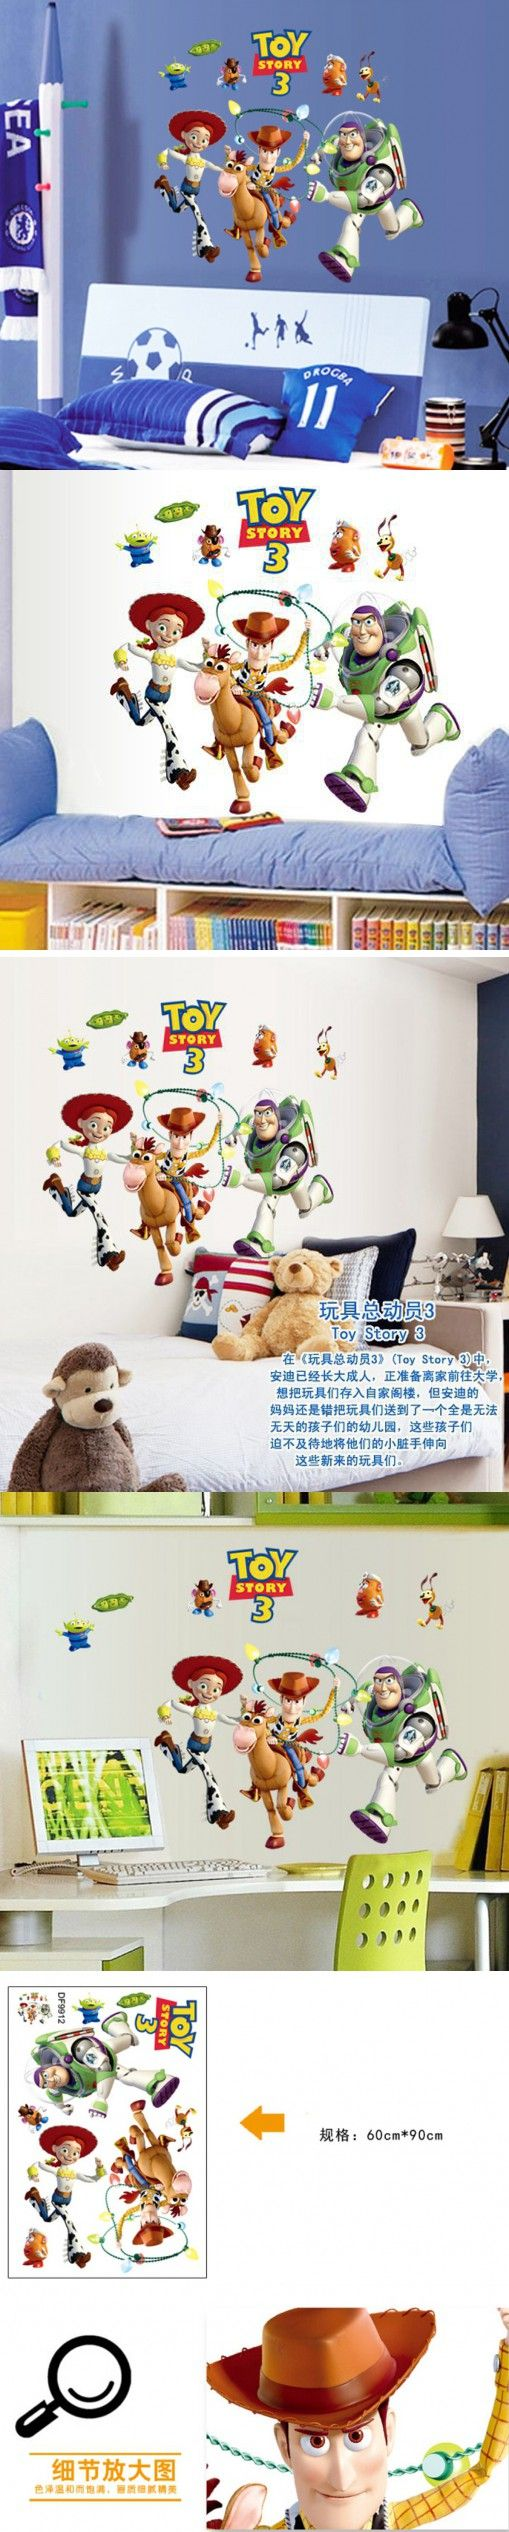 best 25 wall stickers for kids ideas on pinterest army room buzz lightyear toy story wallpaper vinyl wall stickers for kids rooms home decor living room sofa wall decals home decoration